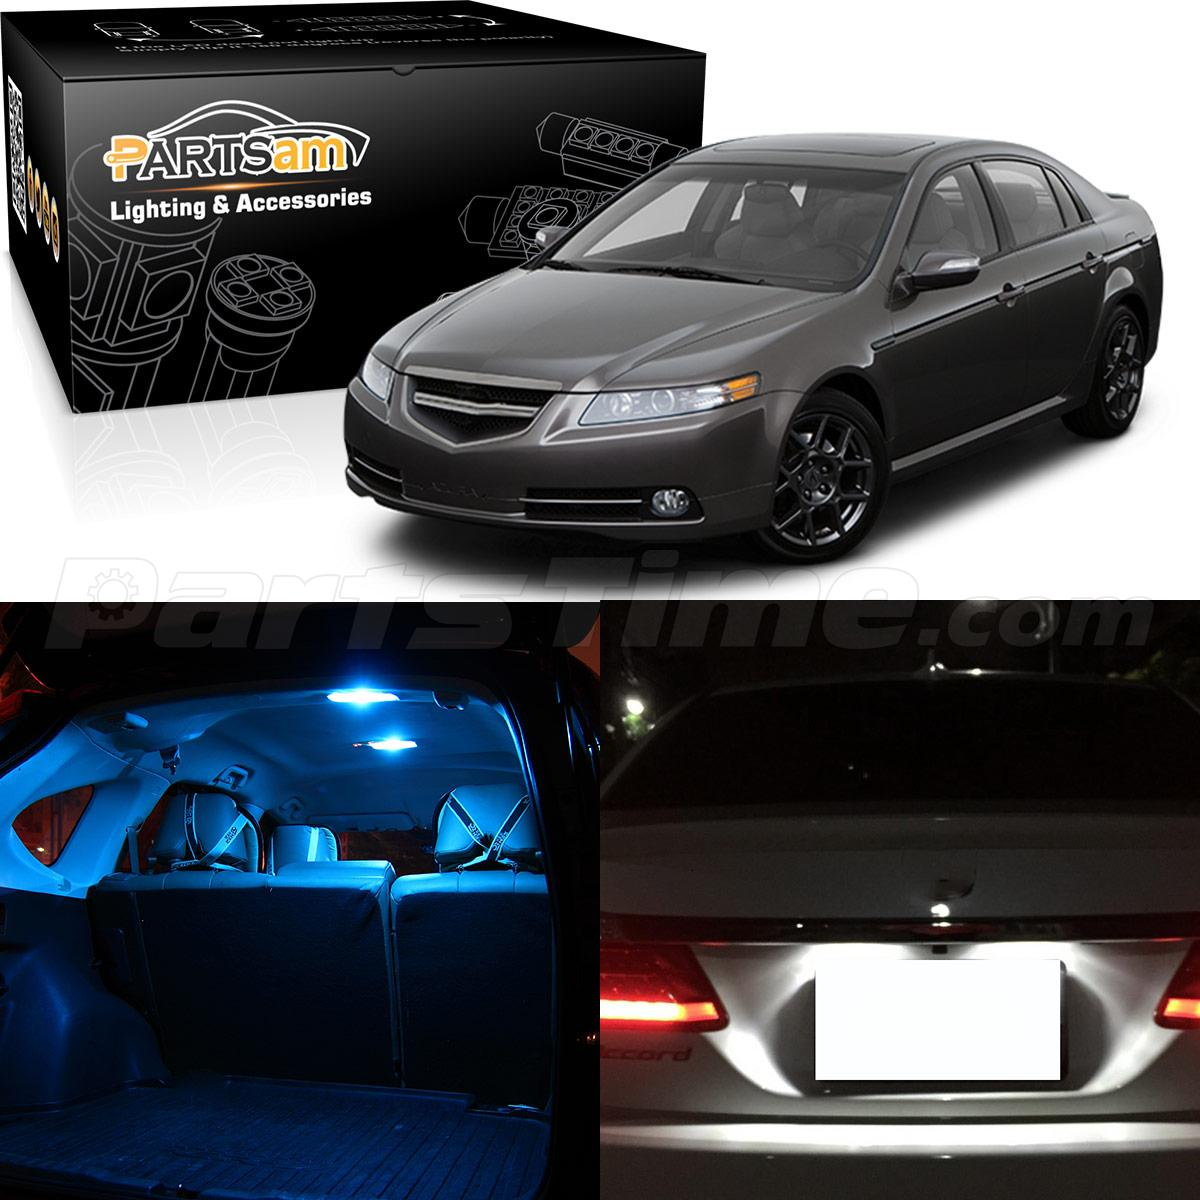 12x usa ice blue led package kit bulb car interior lights for 2004 2008 acura tl ebay 2004 acura tl led interior lights